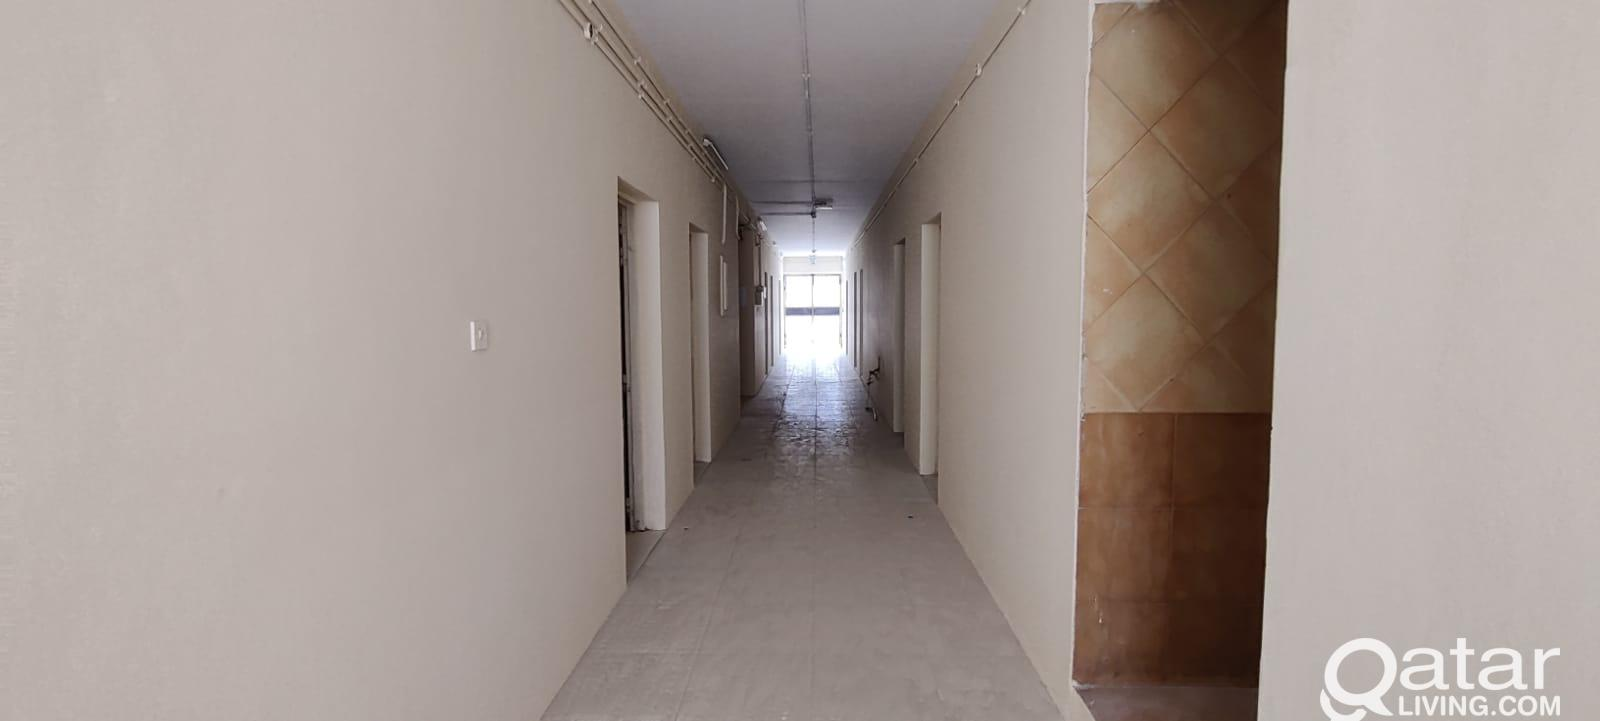 120 Room For Rent (size 5x4)